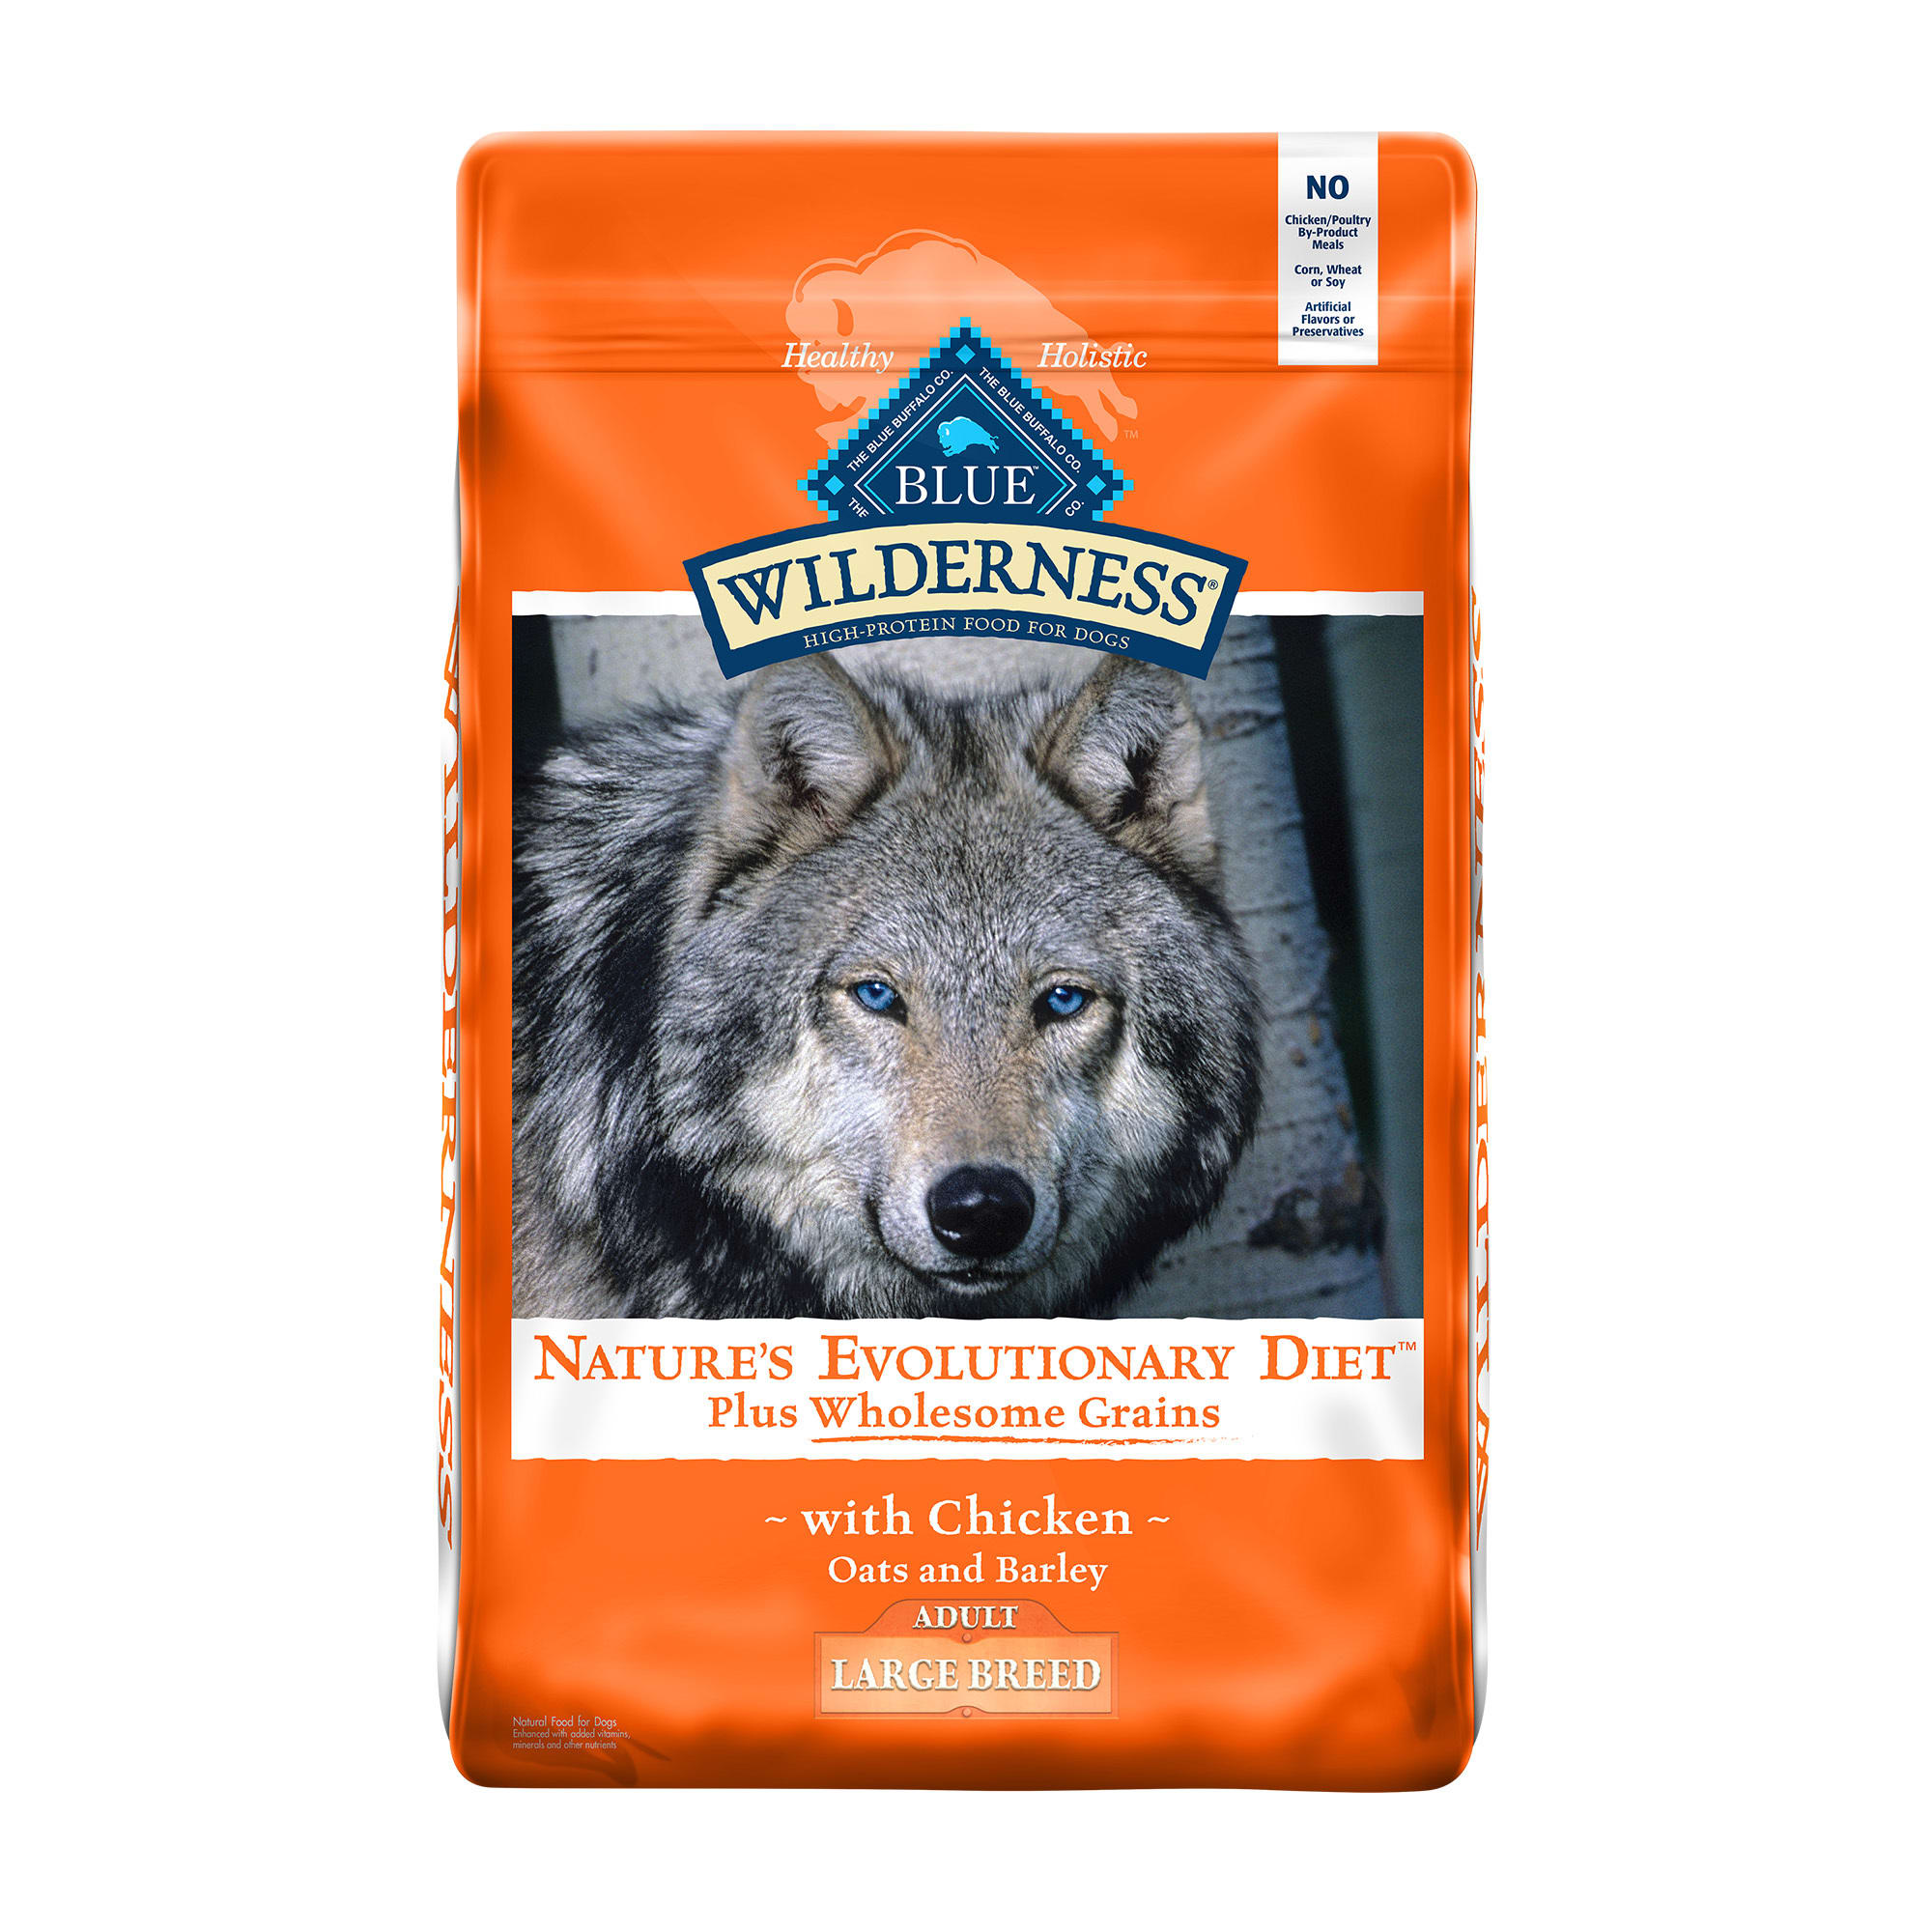 BLUE Wilderness natural dry dog food satisfies the spirit of the wolf in your canine with more of the meat dogs love and is enhanced with vitamins, minerals and other nutrients. This high protein large breed dog food starts with delicious, protein-rich chicken, contains wholesome grains and features antioxidant-rich LifeSource Bits. Specially formulated for large breed dogs, this recipe contains glucosamine, chondroitin and EPA to help support your large dog\\\'s healthy joint function and overall mobility.